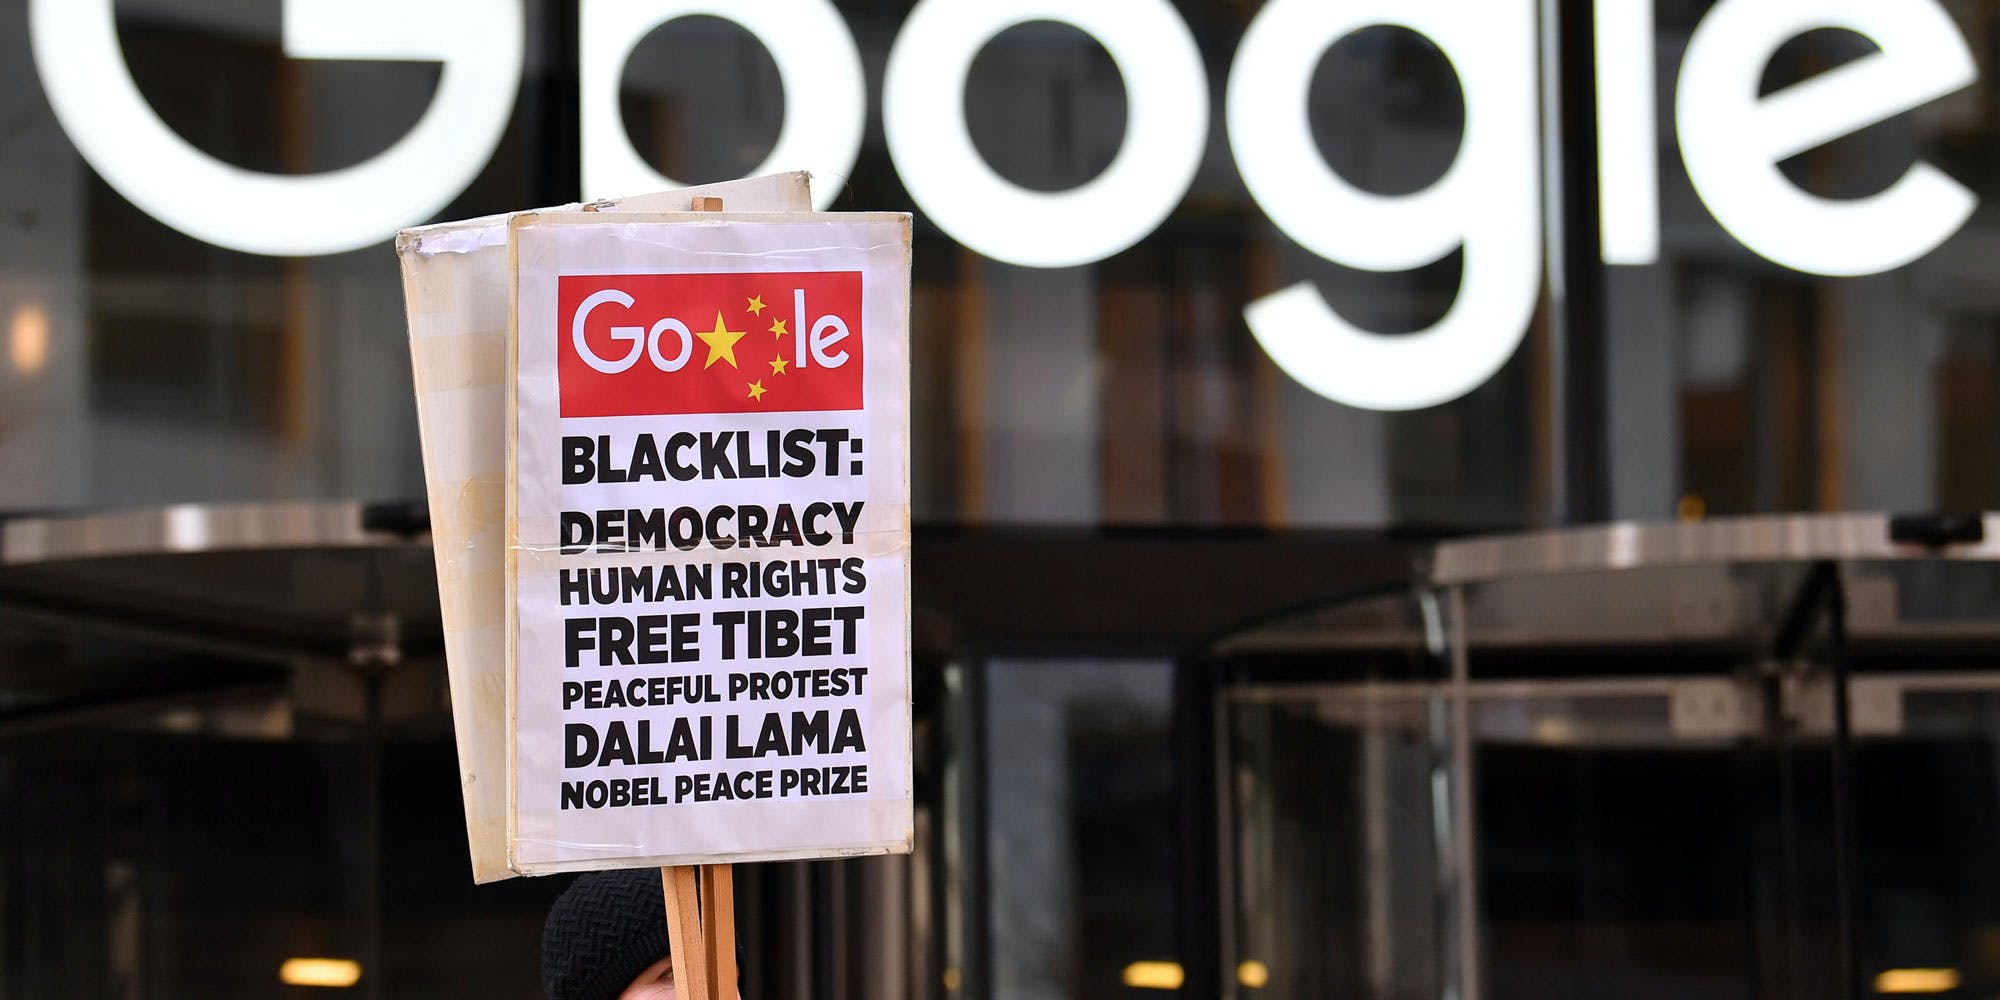 """A demonstrator holds a placard as they protest outside the offices of Google in London on January 18, 2019. - A global coalition of 60 human rights and media groups wrote to Google chief executive Sundar Pichai urging him to scrap the """"Dragonfly"""" project, a censored search engine for China, which has already sparked opposition from the US tech giant's own staff. (Photo by Ben STANSALL / AFP)        (Photo credit should read BEN STANSALL/AFP/Getty Images)"""